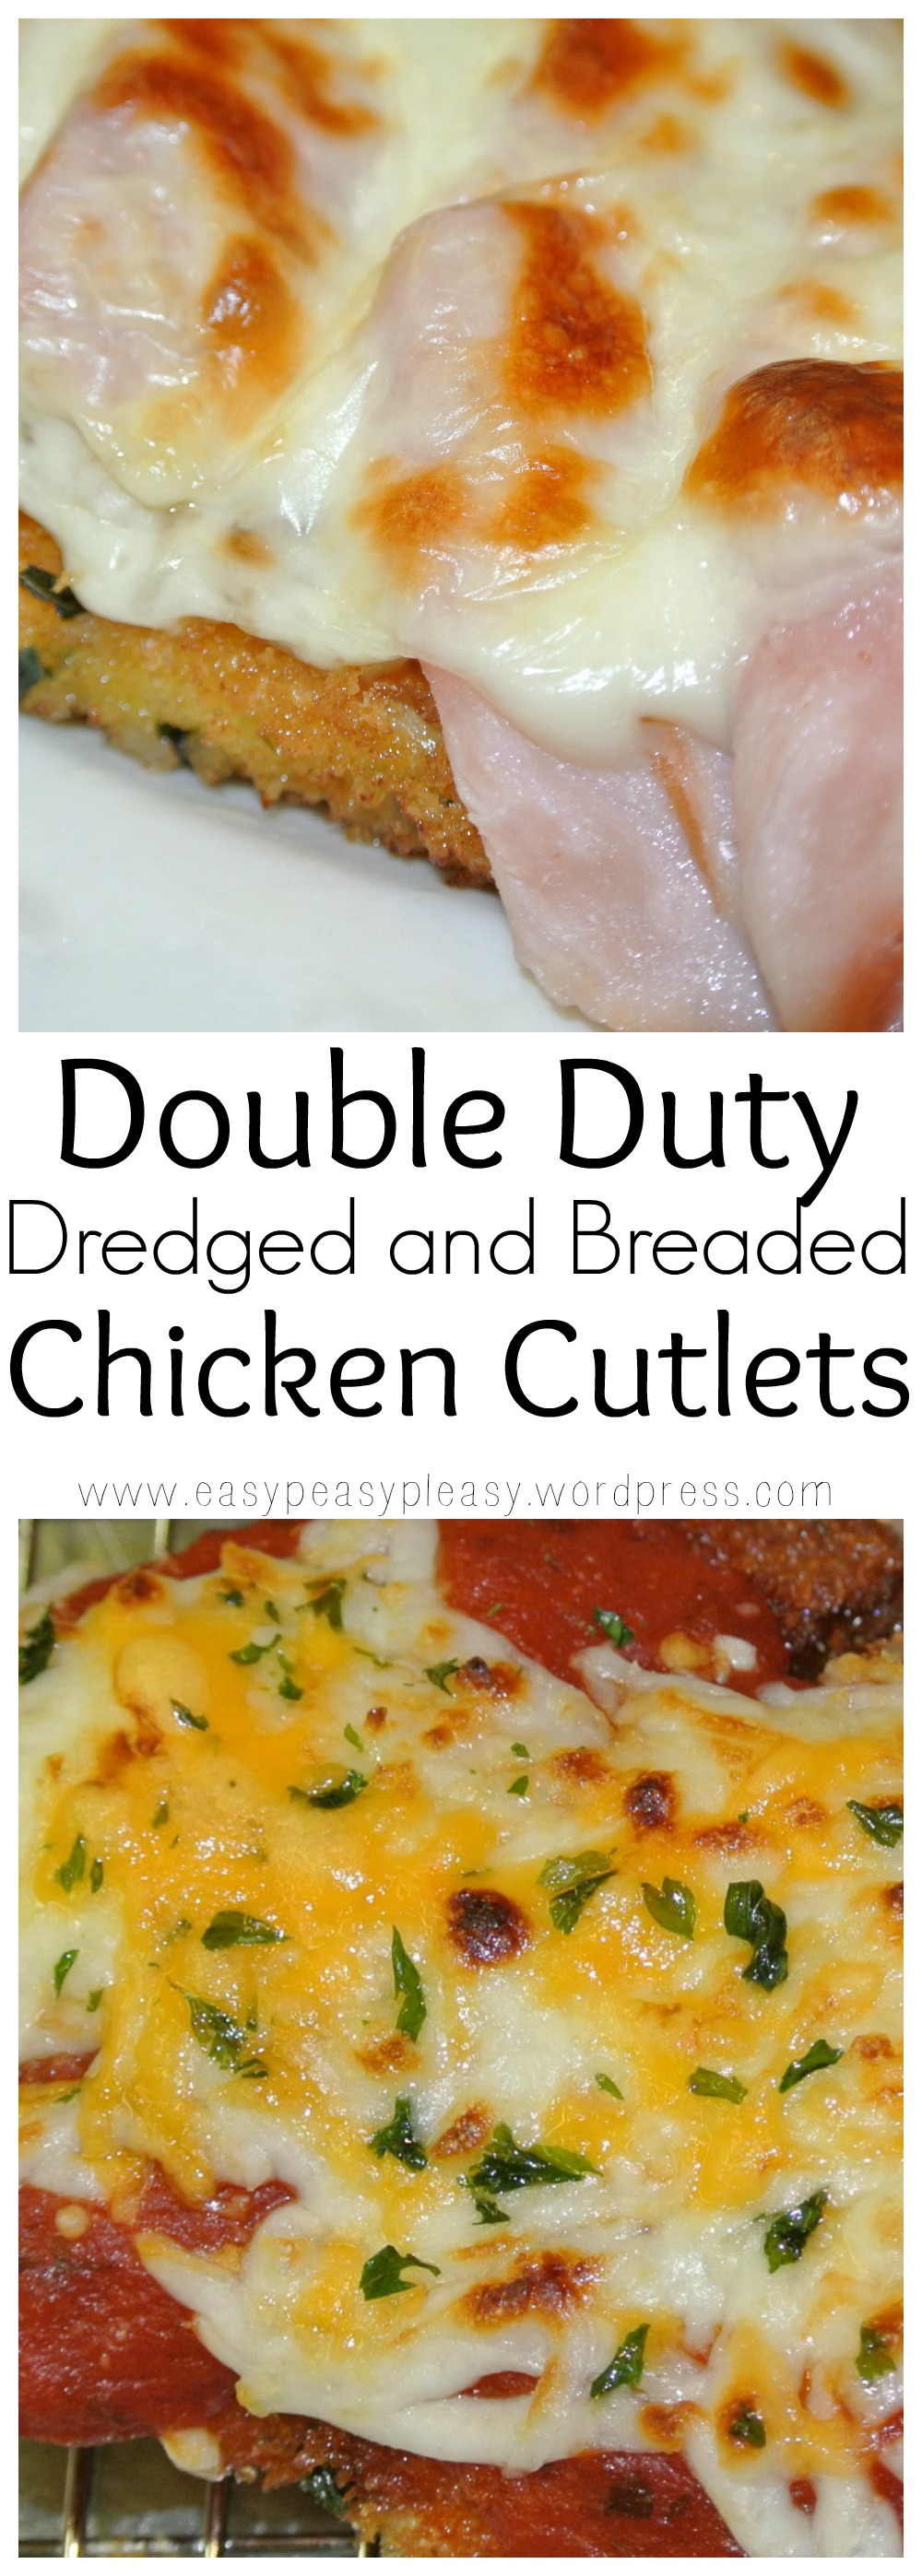 Double Duty Dredged and Breaded Chicken Cutlets Recipes at https://easypeasypleasy.com